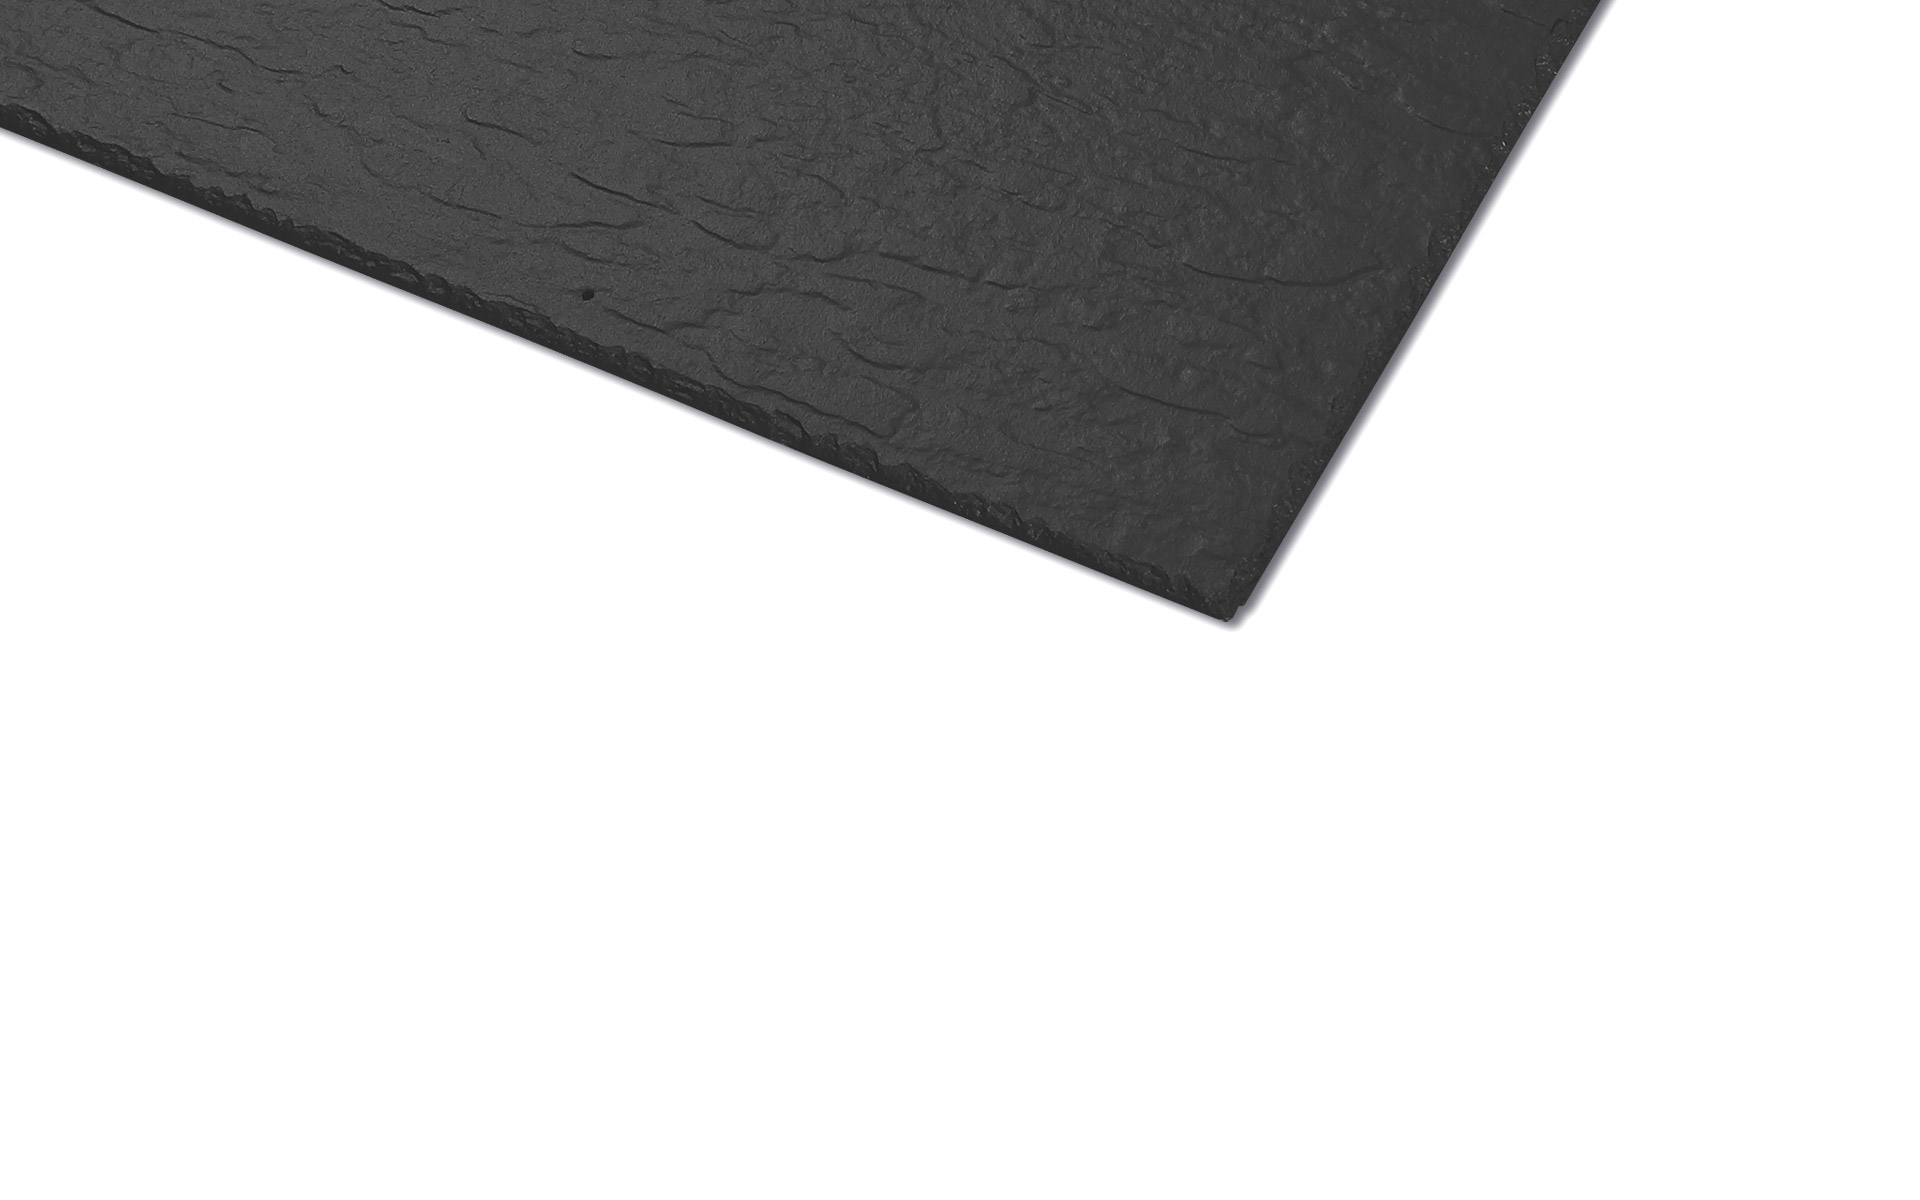 Berona Structured Fibre Cement Slate 600x300mm (Blue/Black)